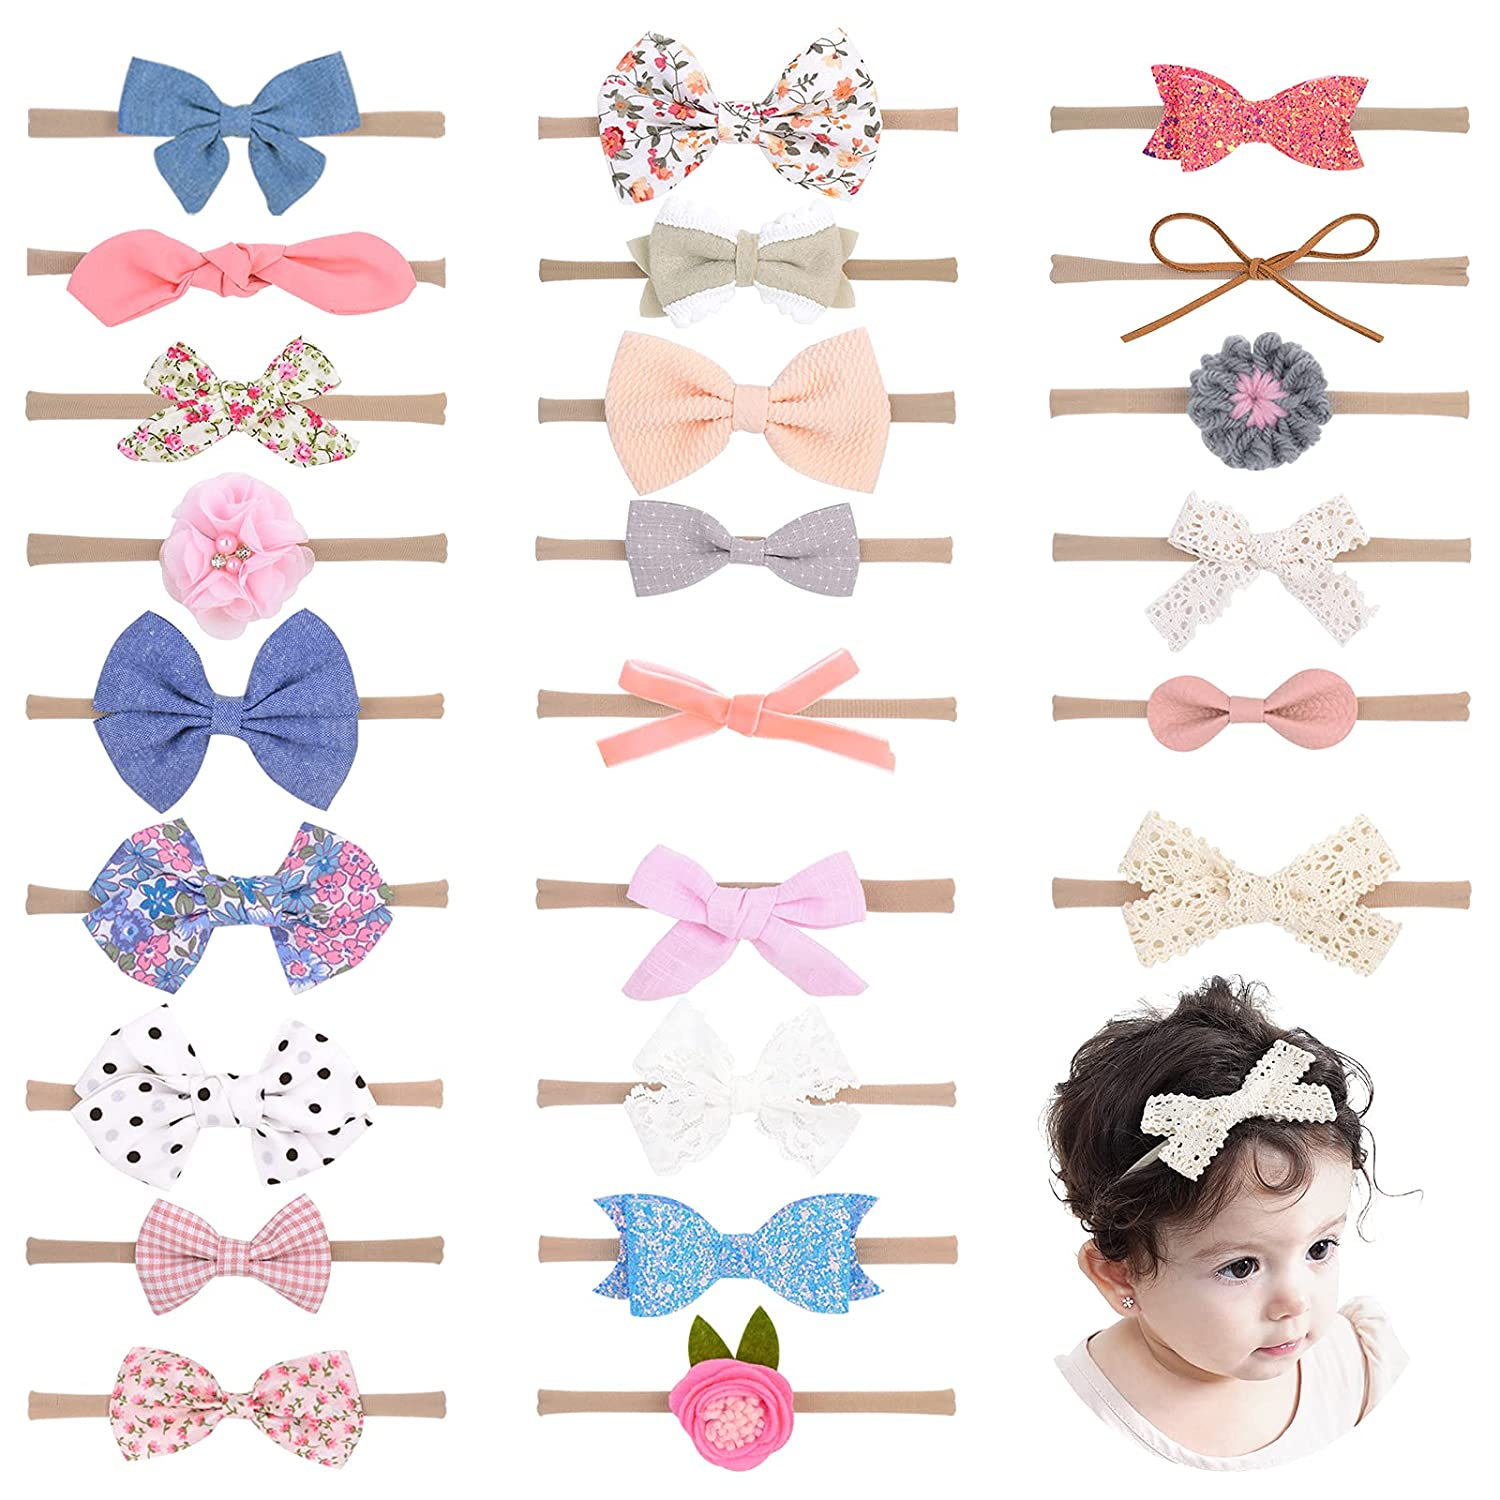 24PCS Baby Girls Flower and Hair Super beauty product restock quality top! Hairb Bows Nylon Soft Headbands 55% OFF